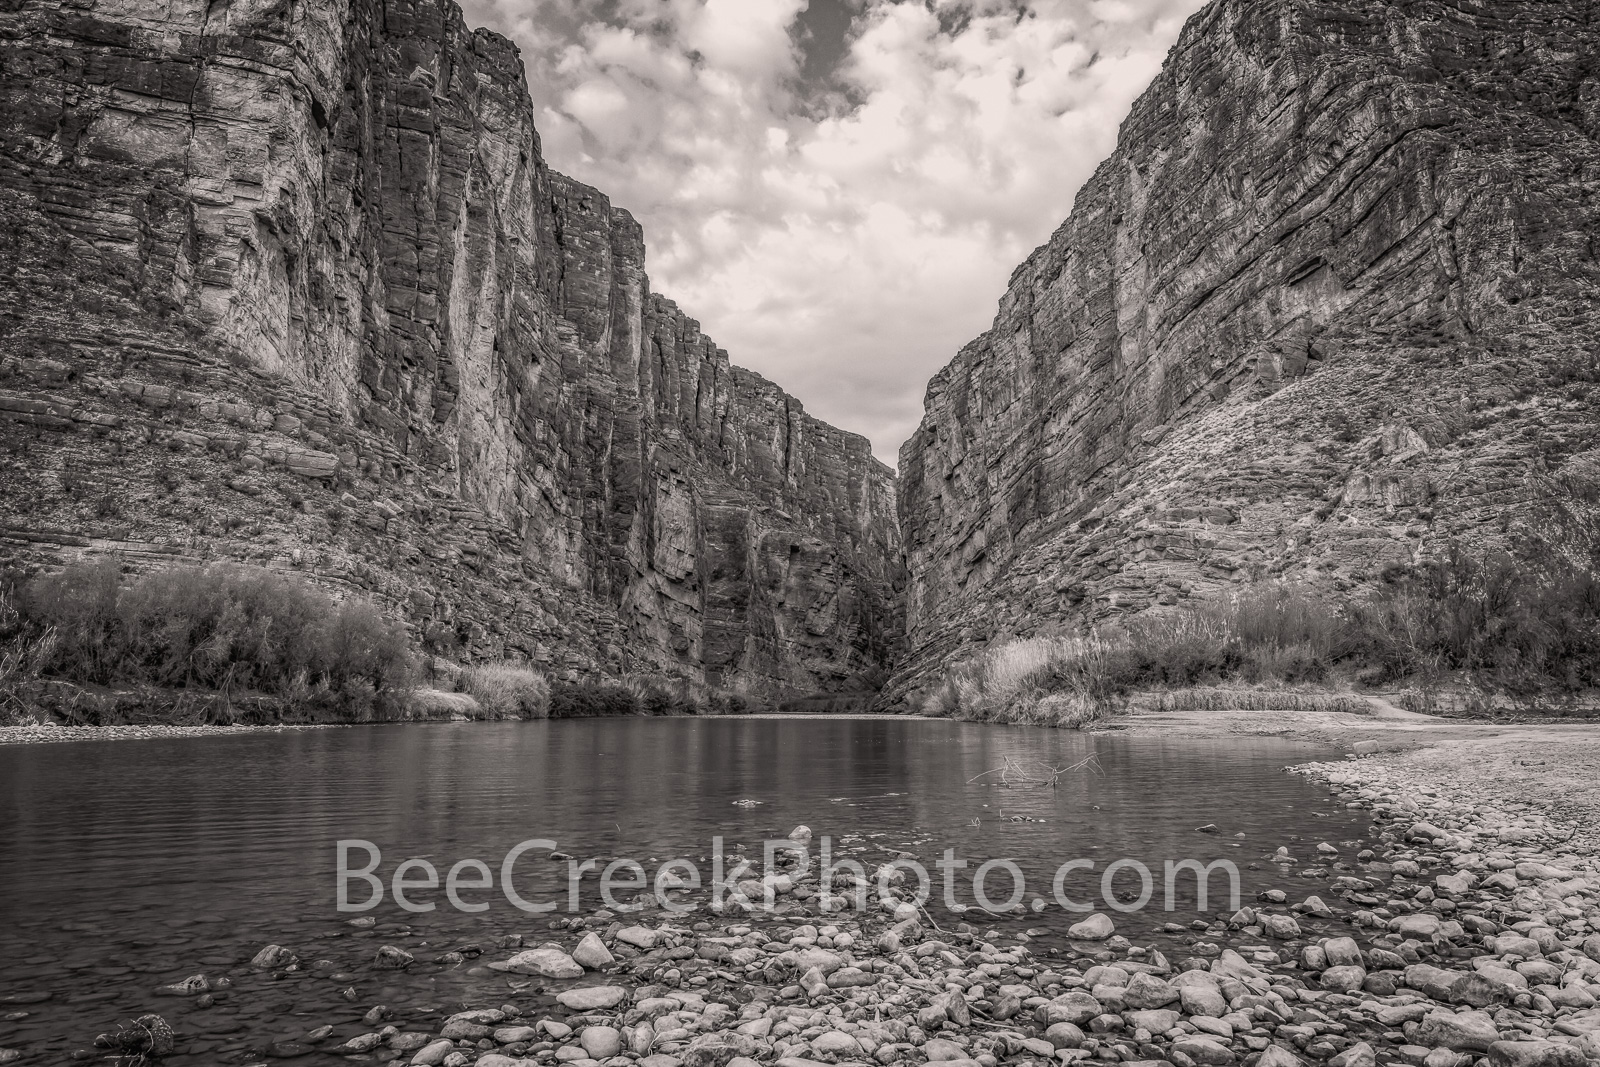 Santa Elena Canyon, Big bend national park, texas landscape, river rocks,  blue sky, nice clouds, canyons, mountains, Mexico, black and white, BW, , photo